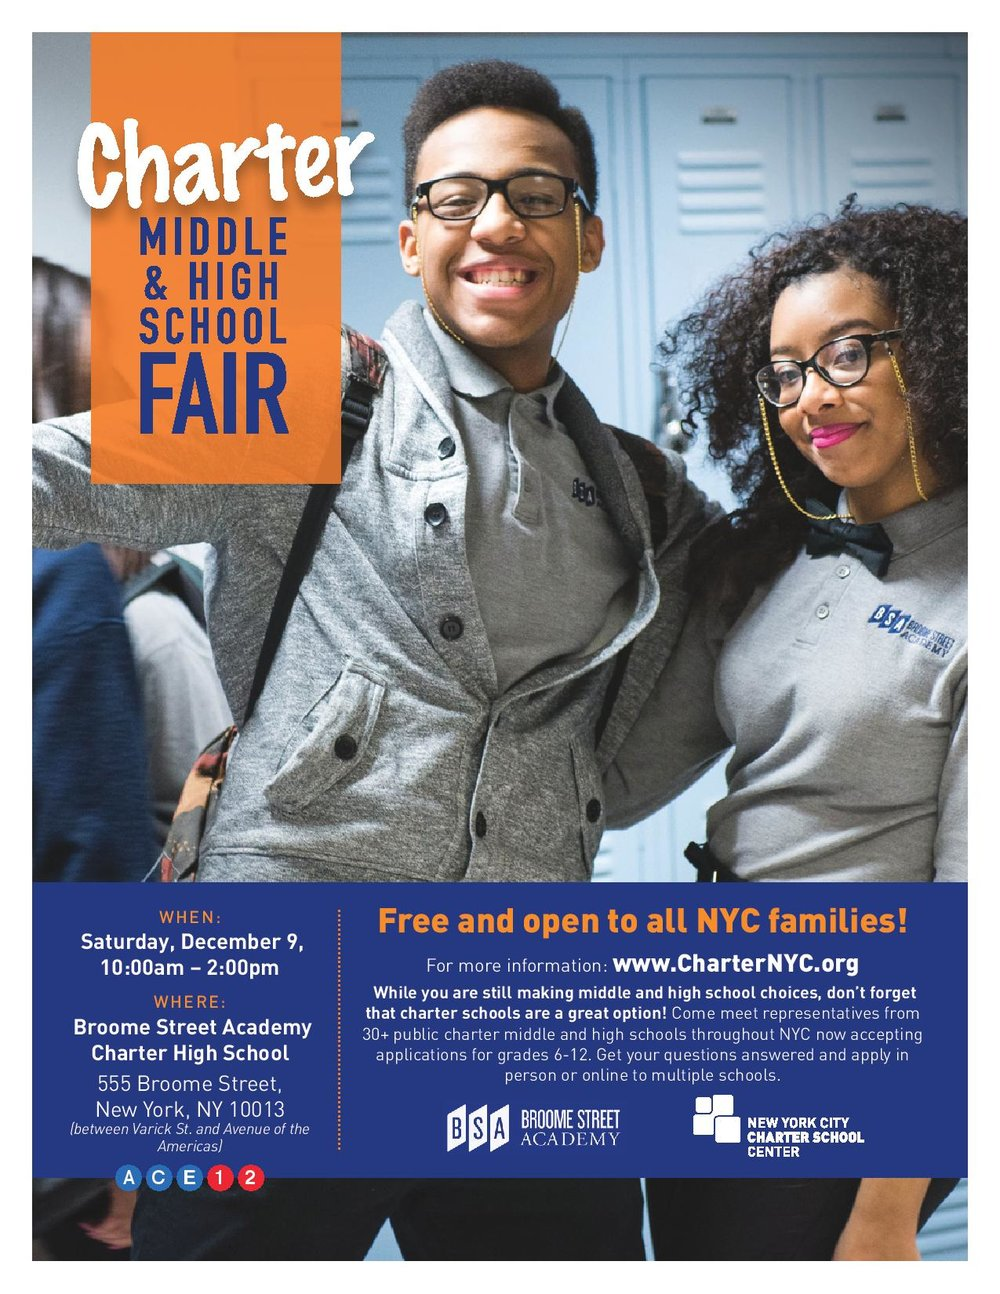 For more information visit www.CharterNYC.org.